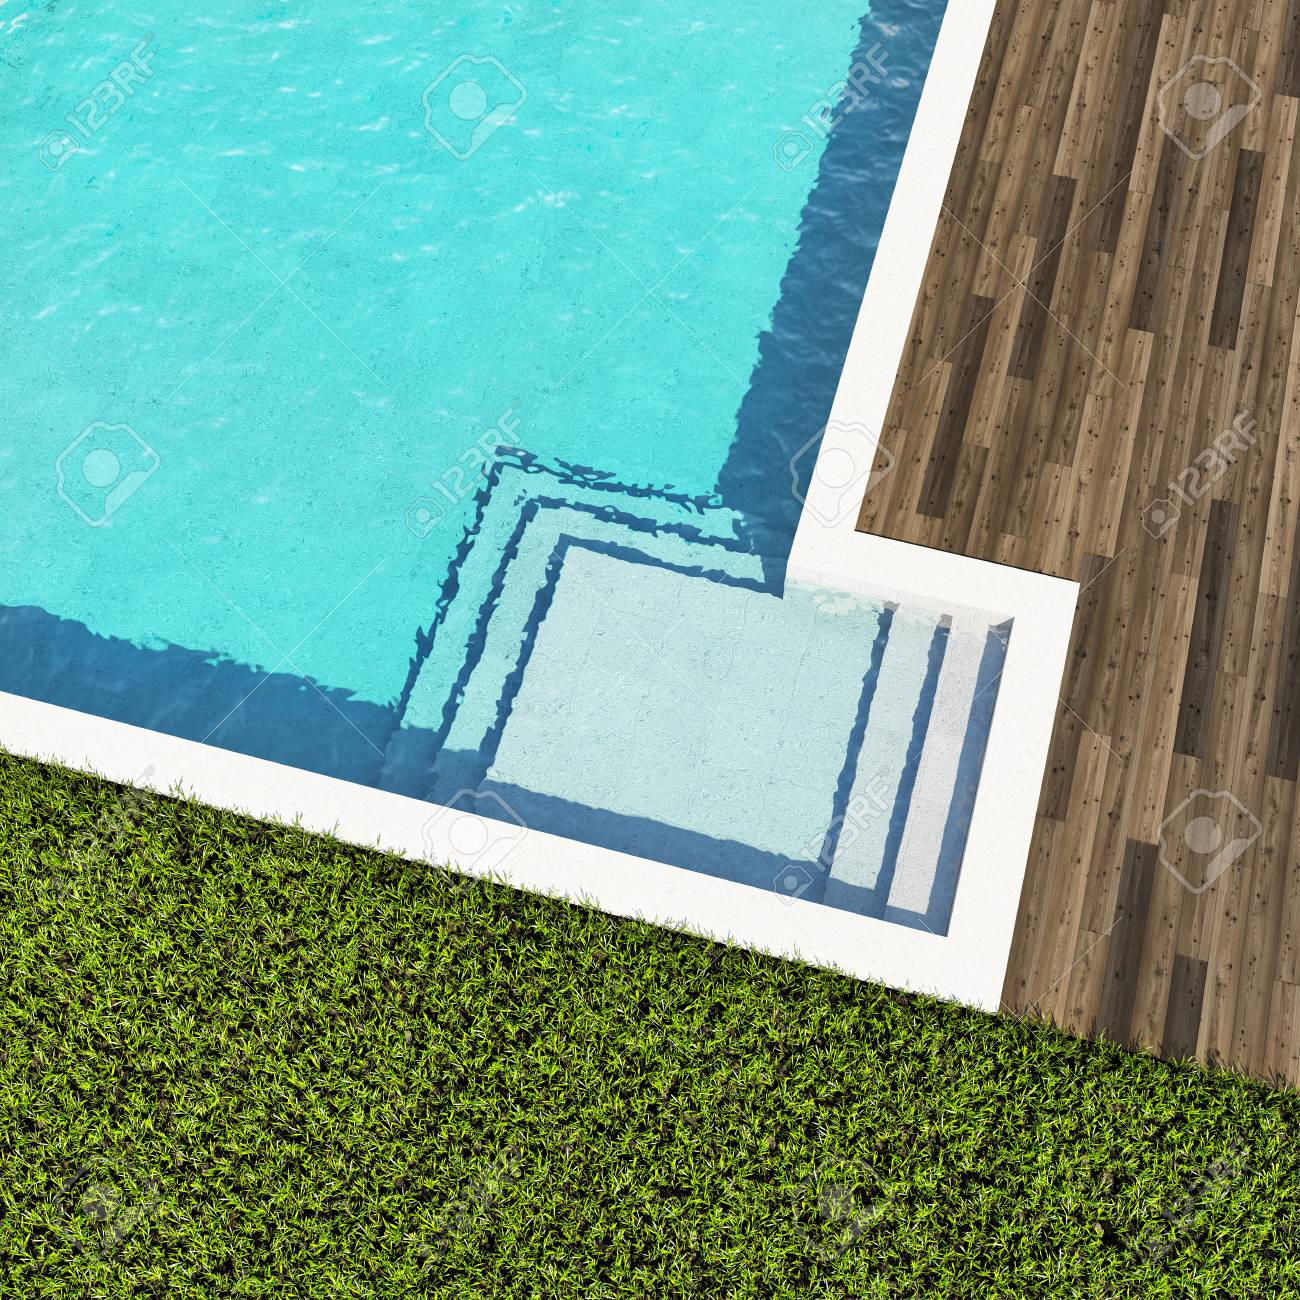 Swimming Pool With Wooden Deck Top View 3d Illustration Stock Photo Picture And Royalty Free Image Image 103237703